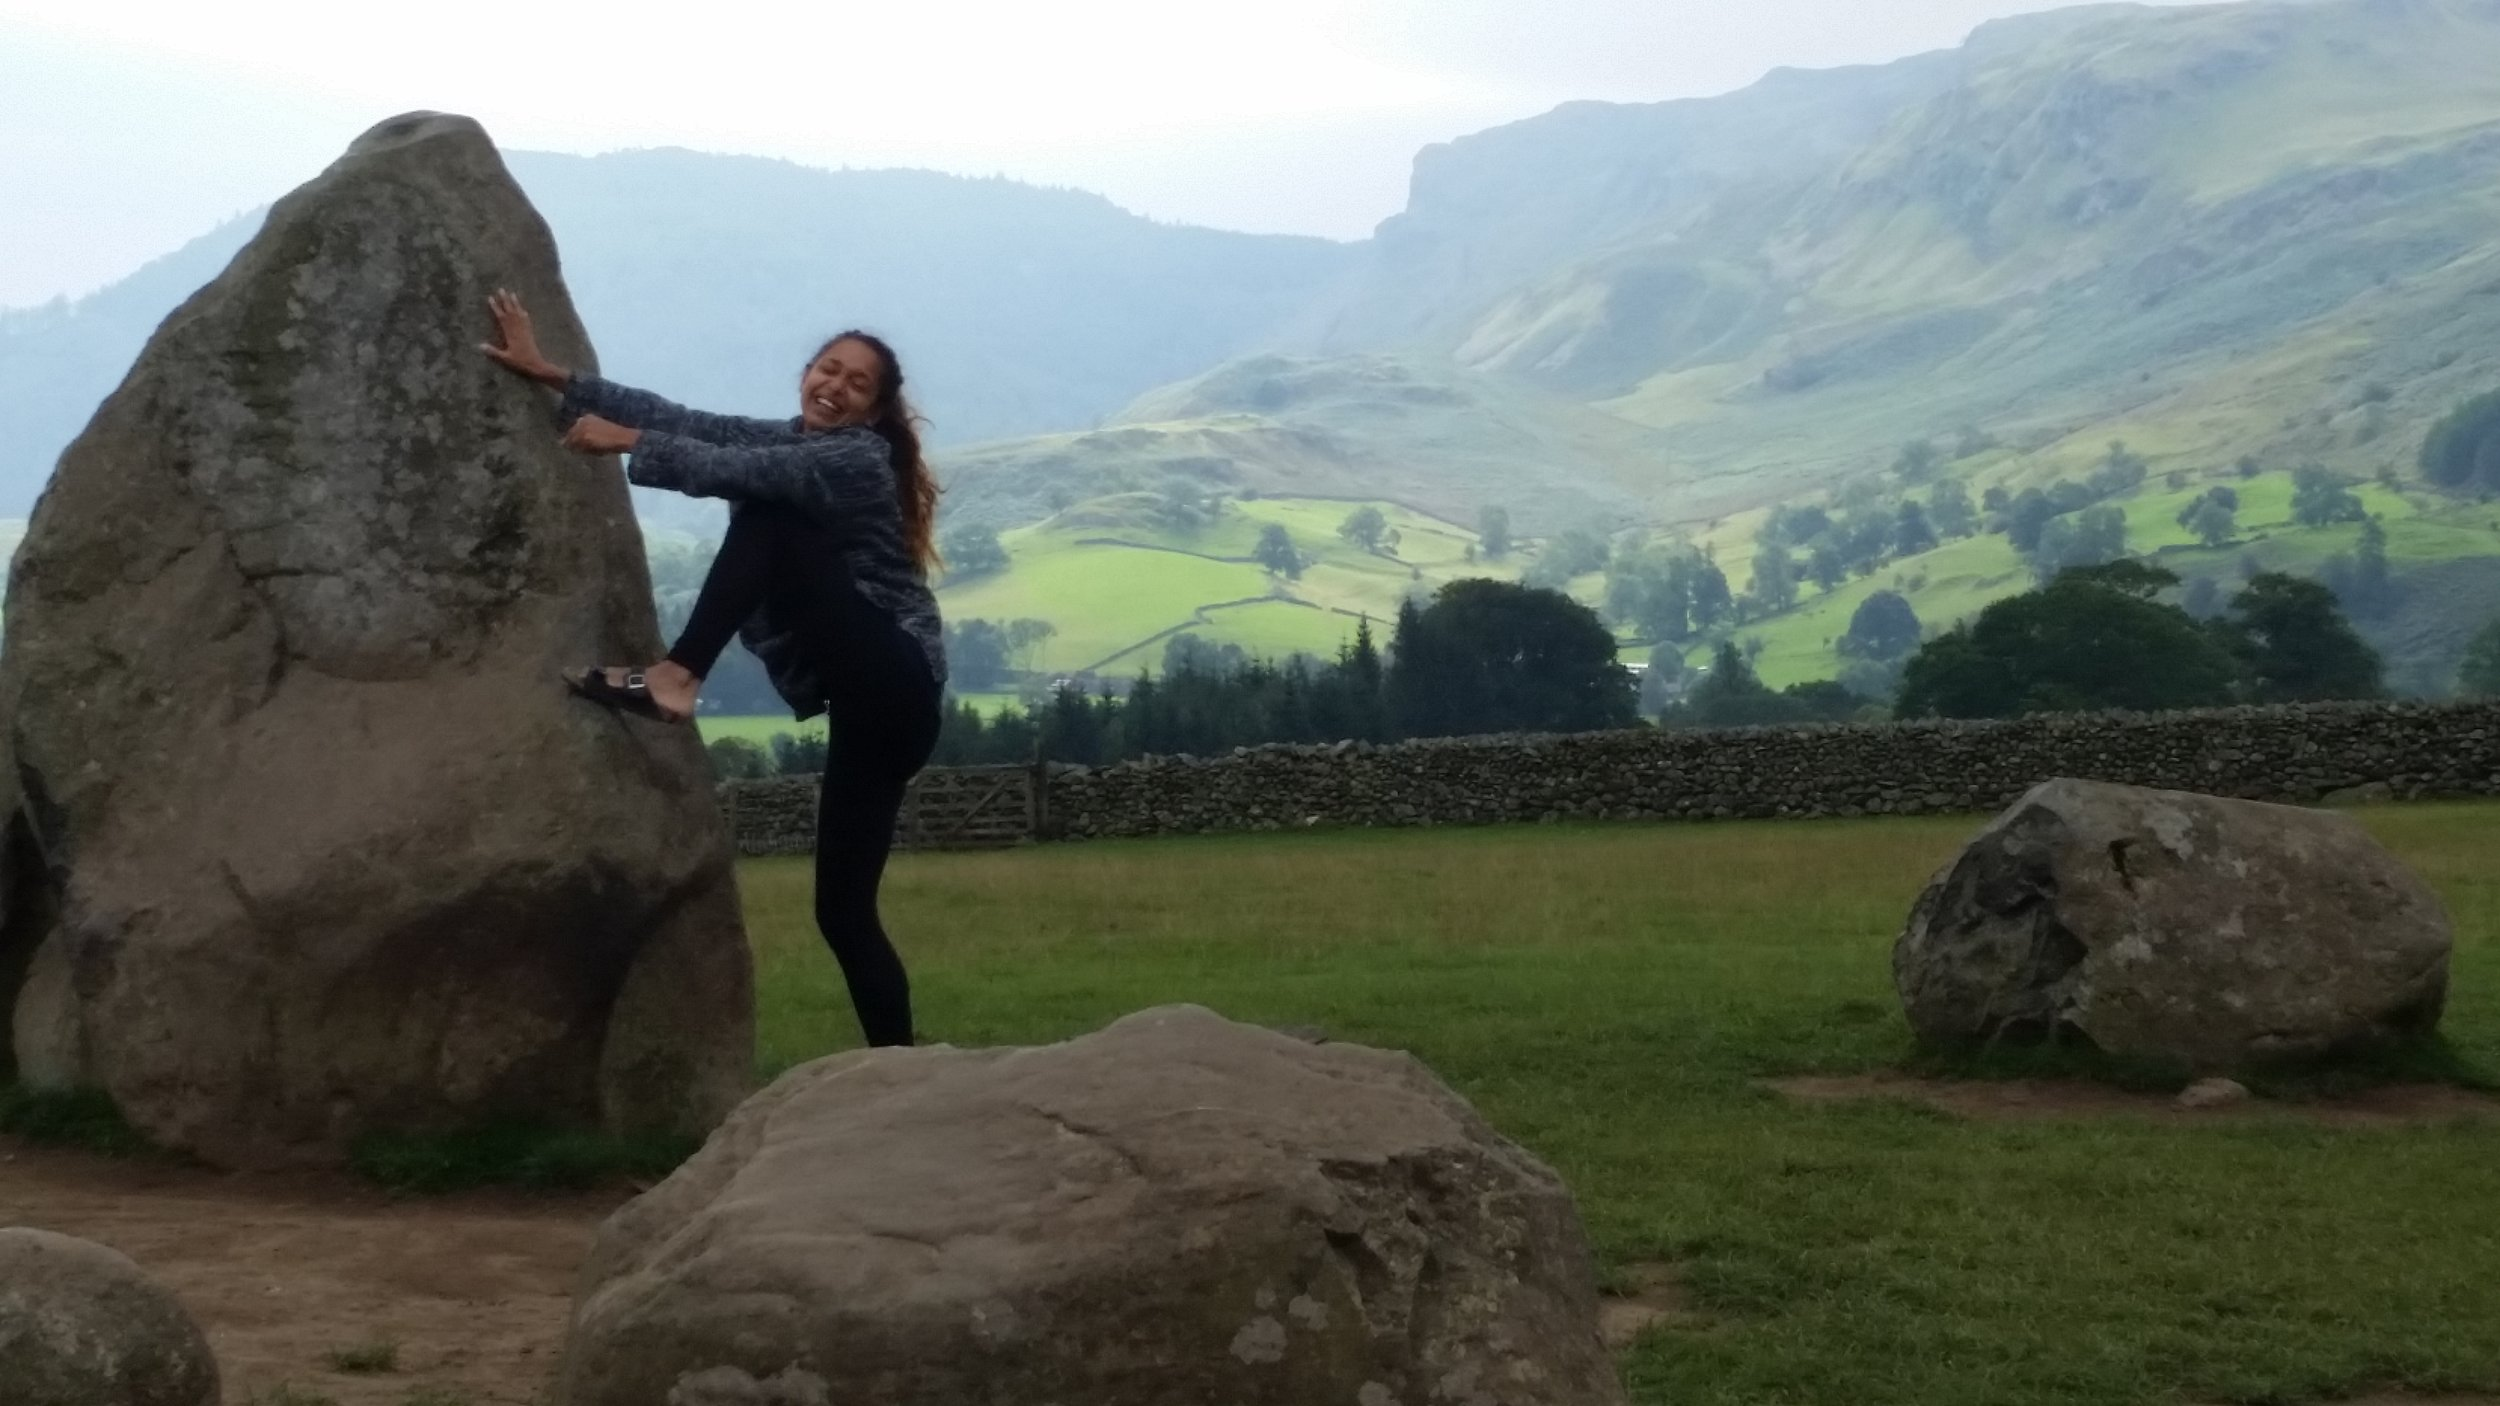 me looking like a bellend trying to climb a rock in a bronze age stone circle, but metaphorically, me climbing into my mid twenties.